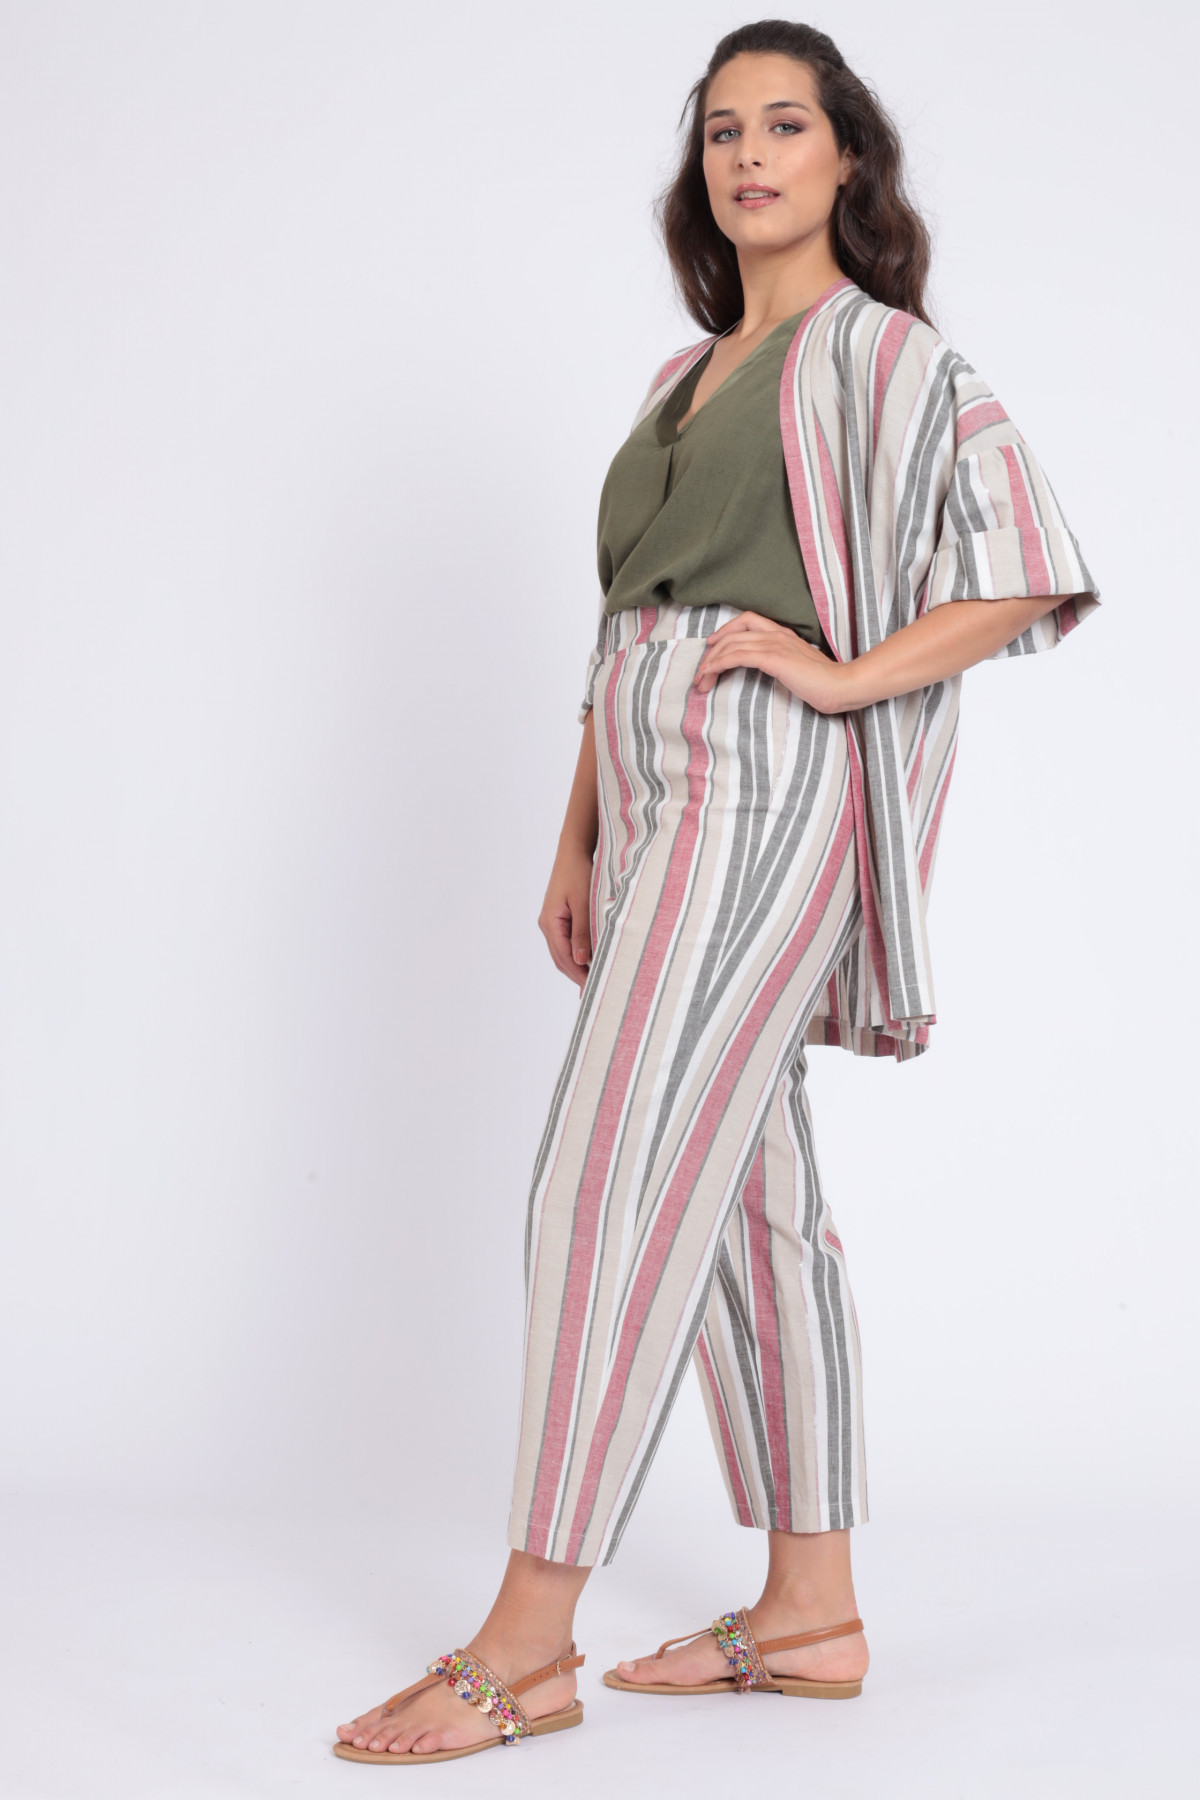 Susy Star Preview: Linen Pants with Cigarette Stripes